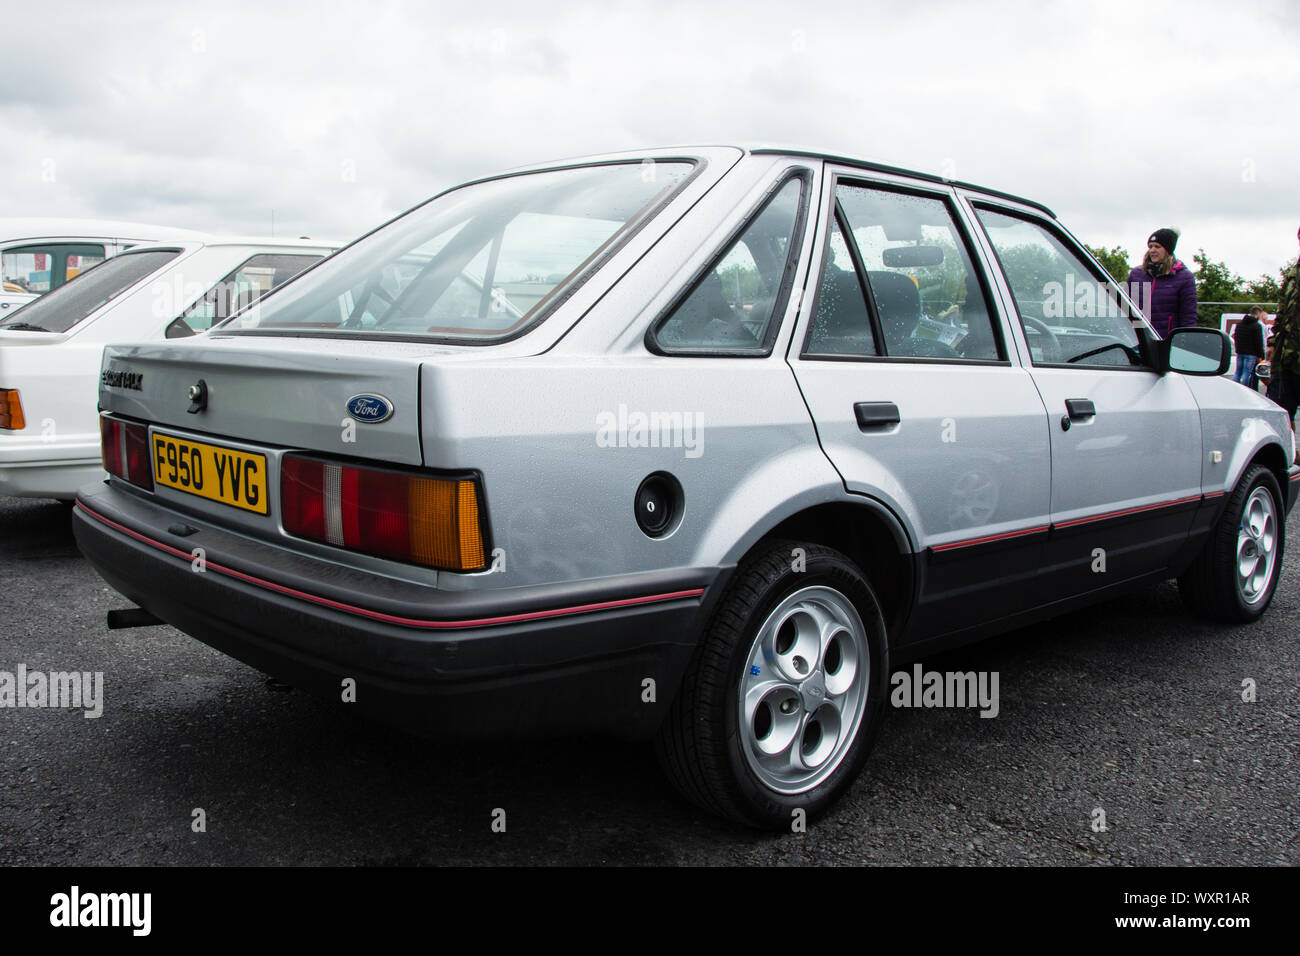 Ford Car 1980s High Resolution Stock Photography And Images Alamy